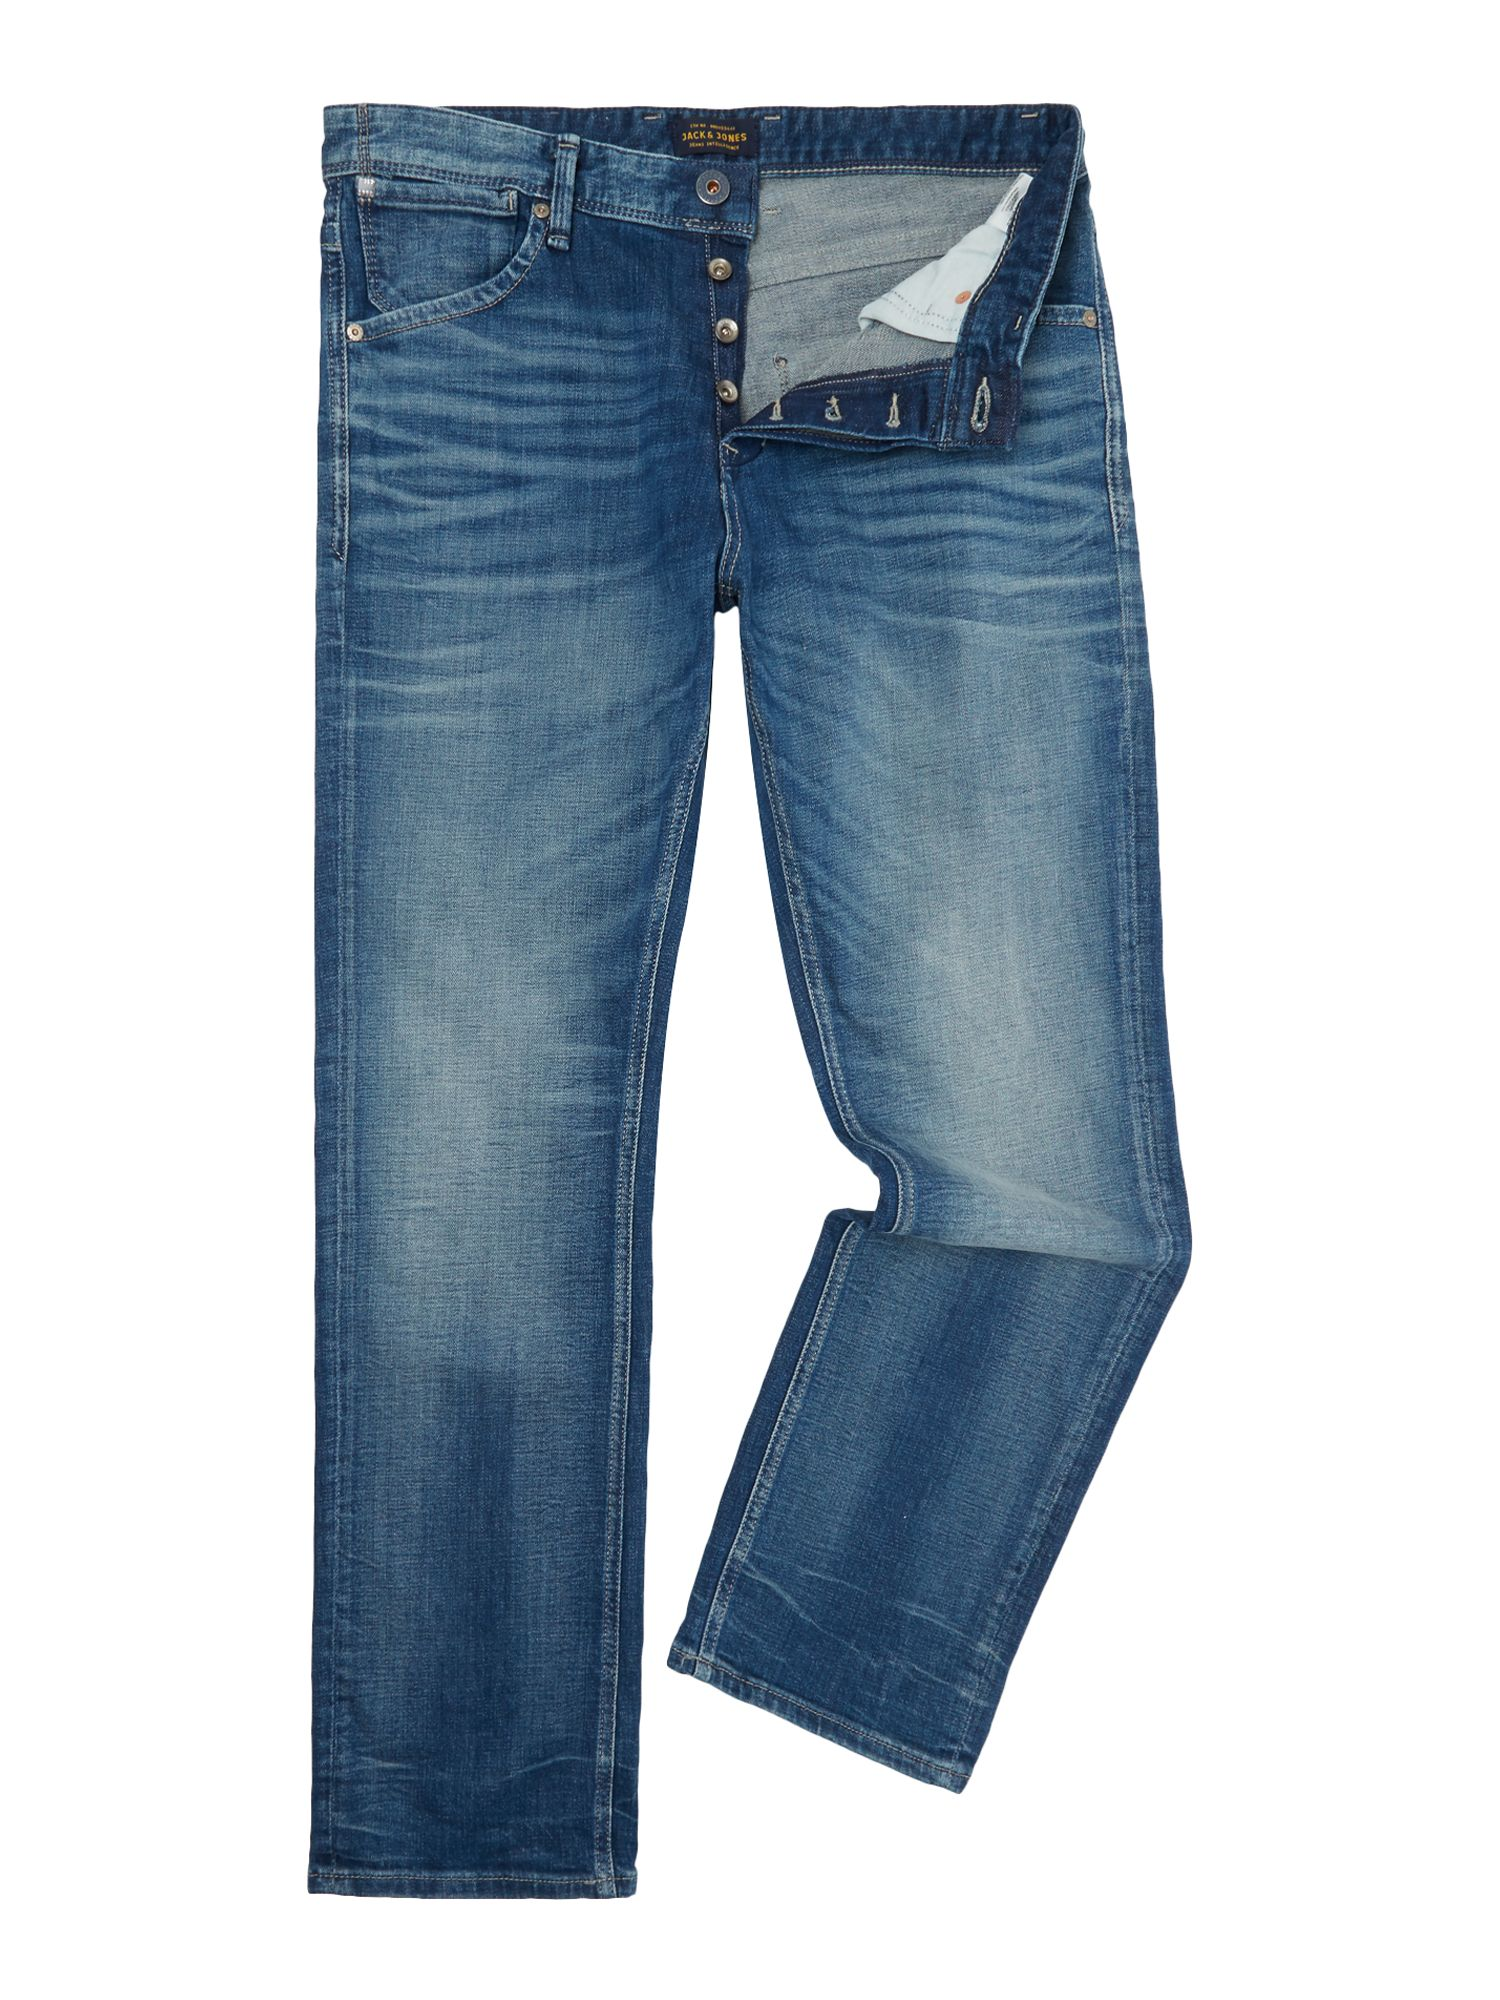 Mens Boxy Loose-fit Jeans, Denim Mid Wash